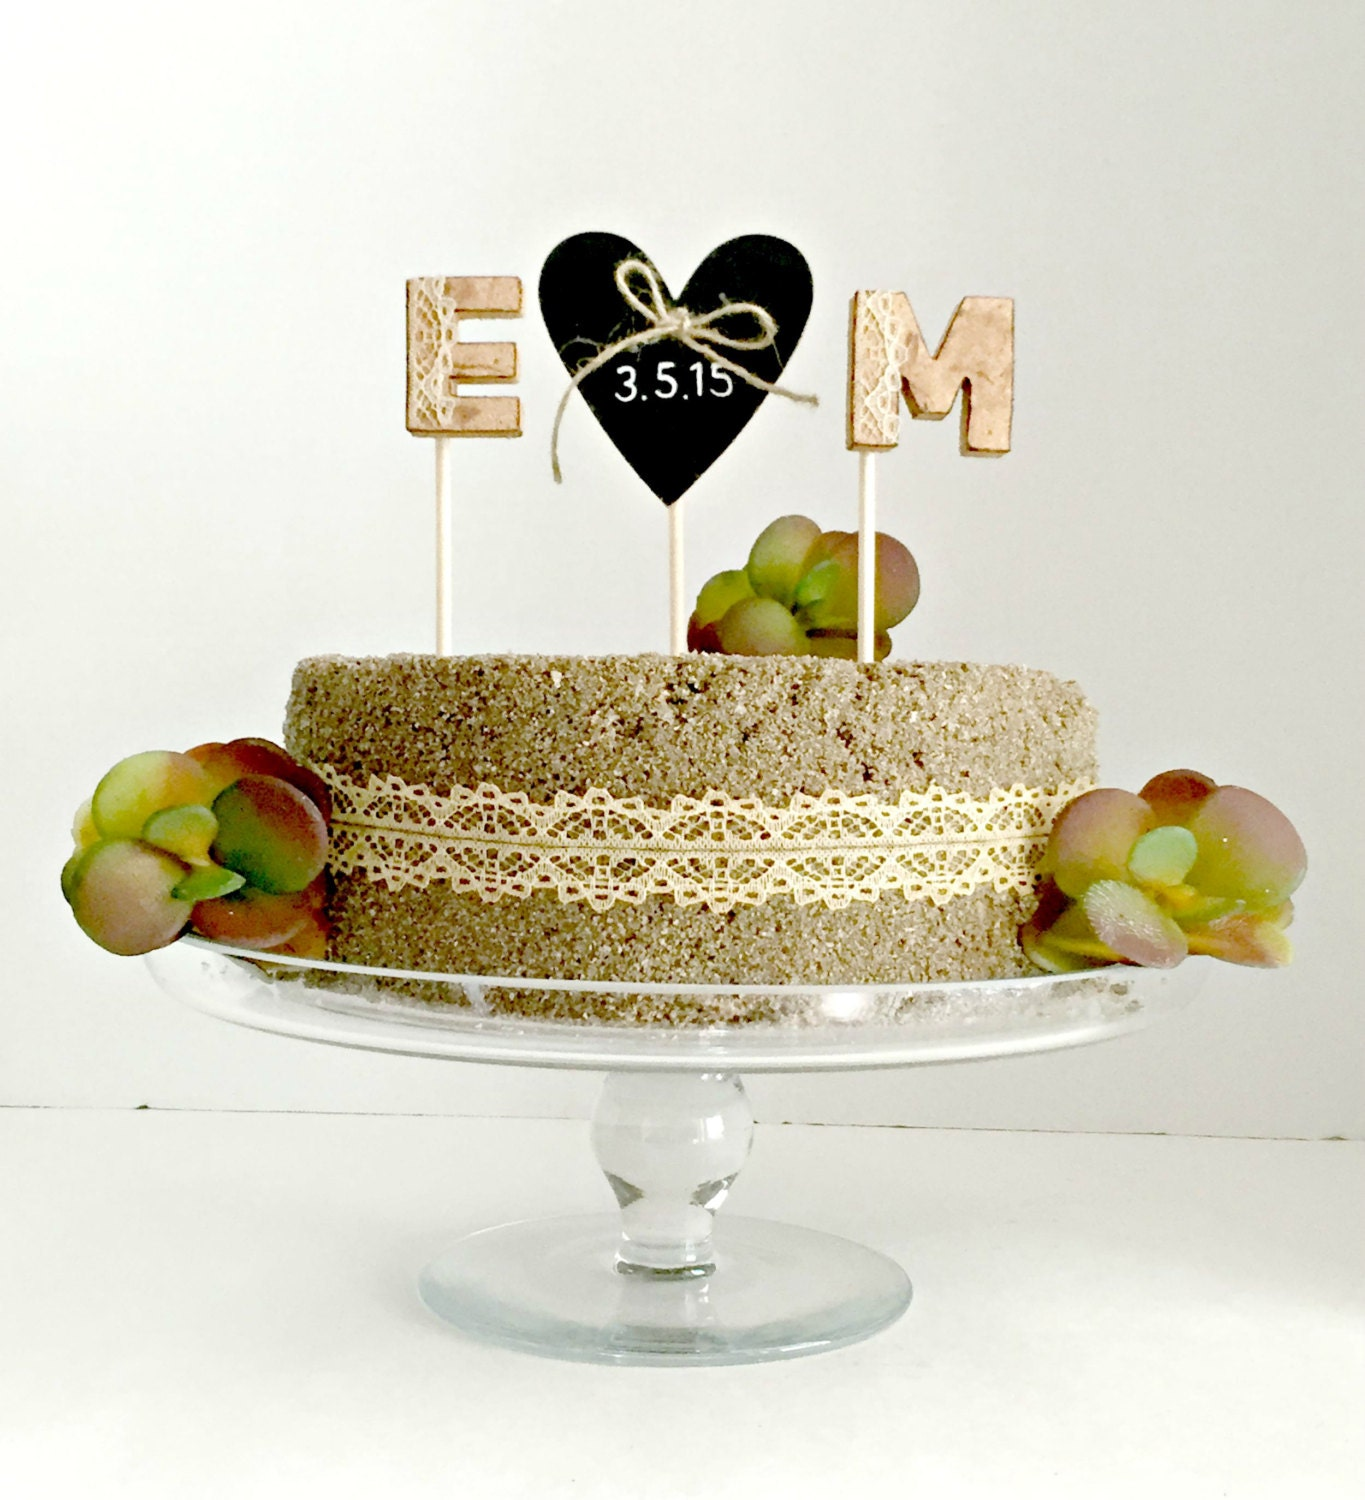 Monogram rustic cork wedding cake topper with chalboard heart